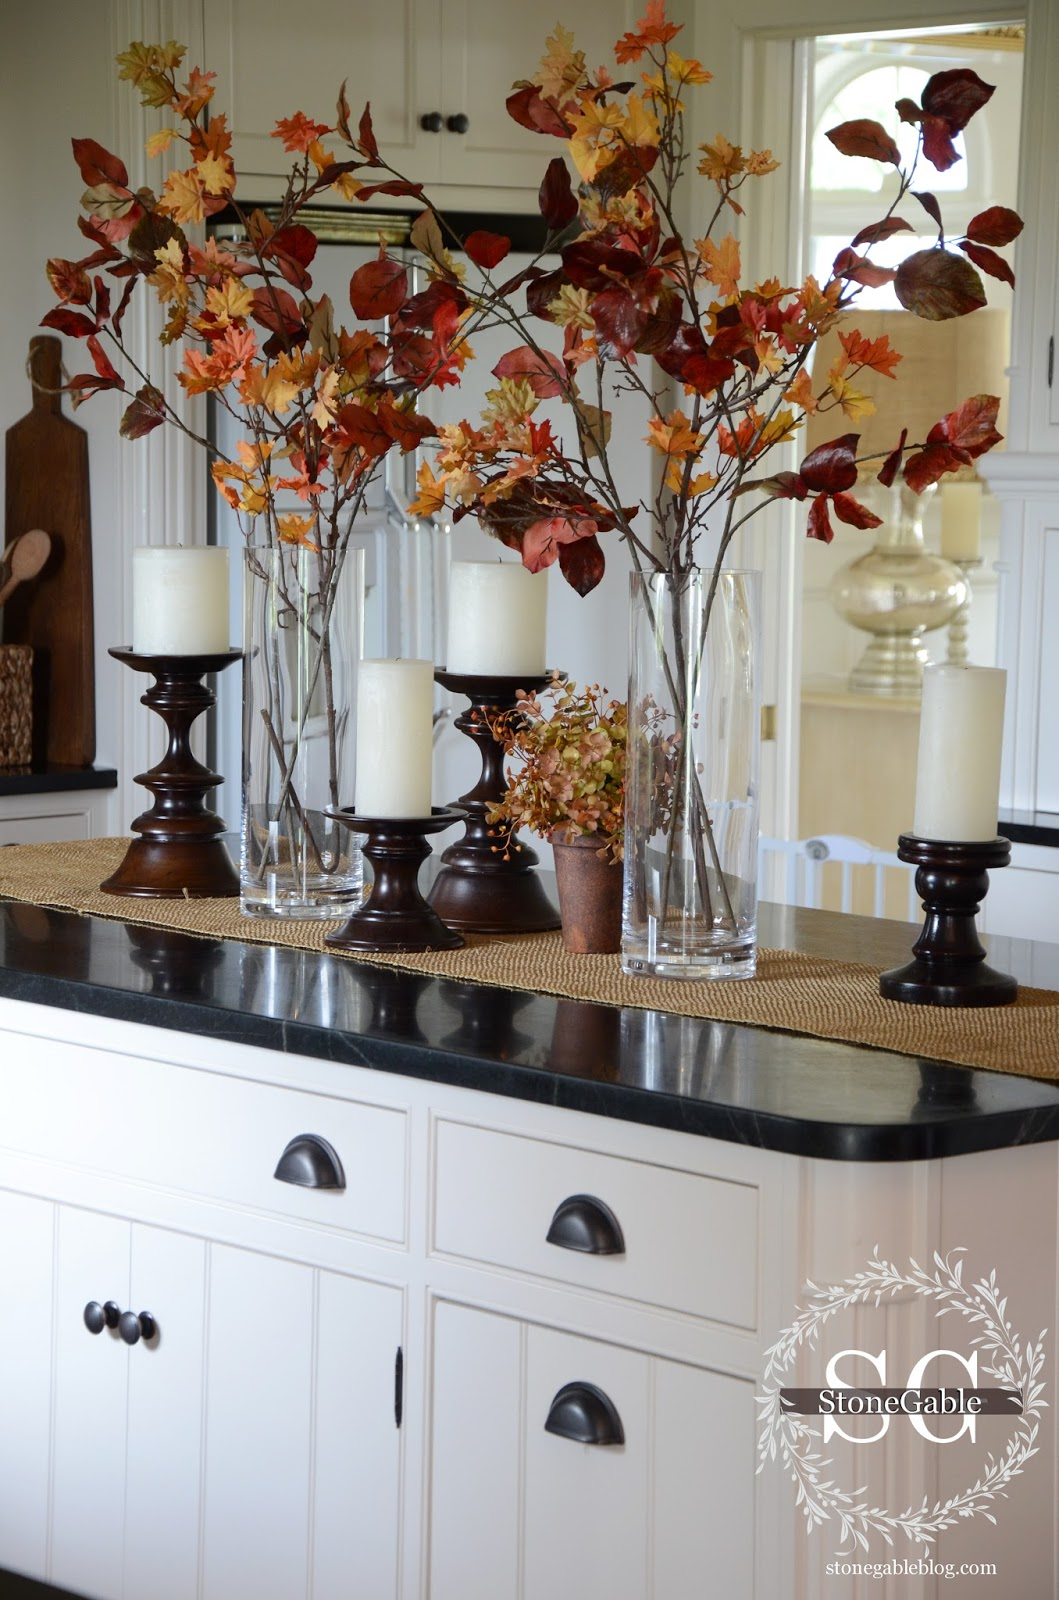 All About The Details Kitchen Home Tour Stonegable